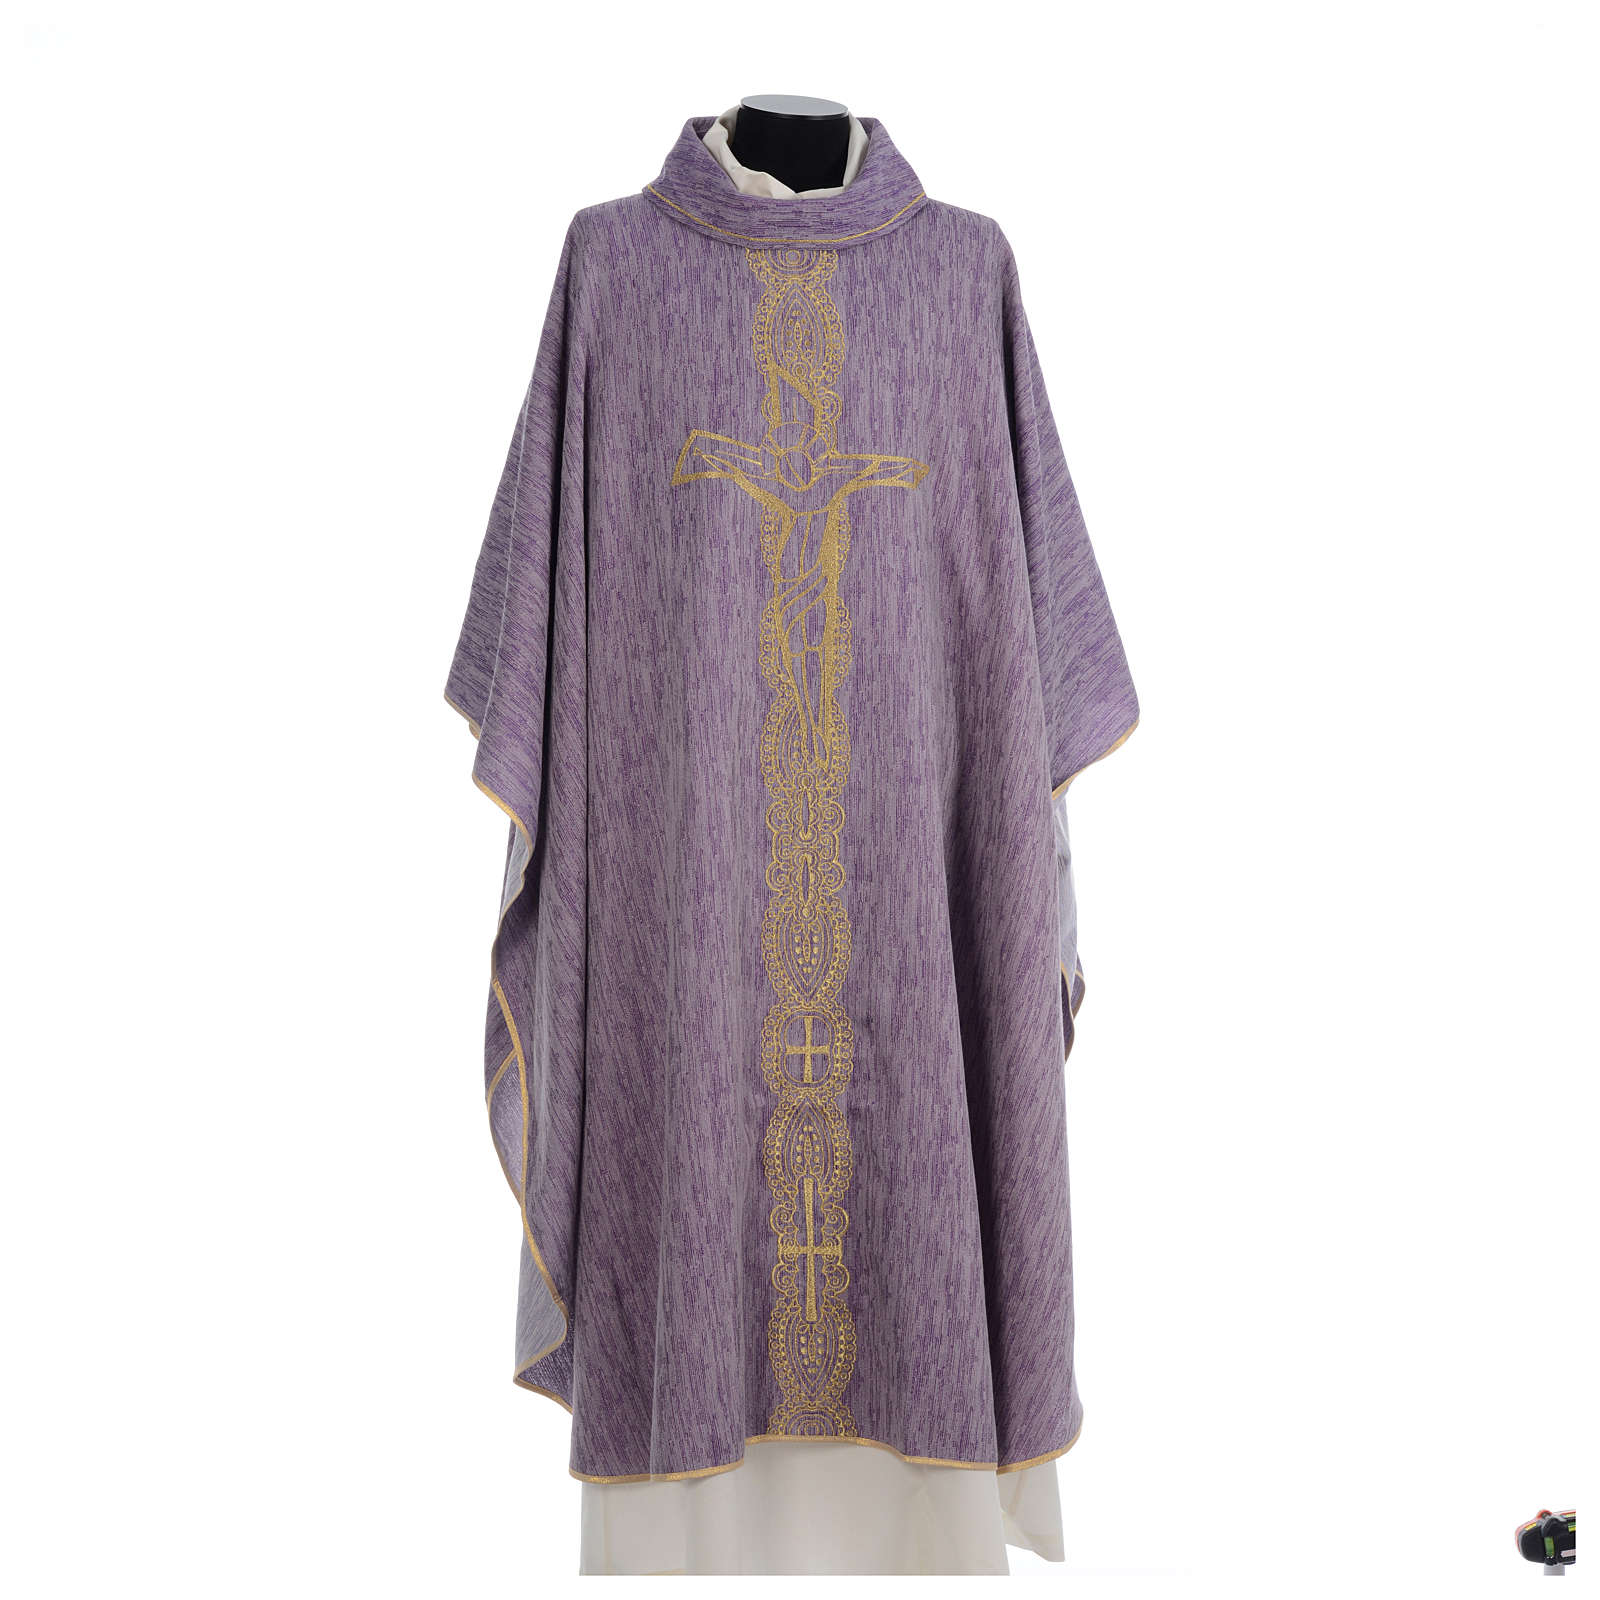 Chasuble embroidered with large cross design 4